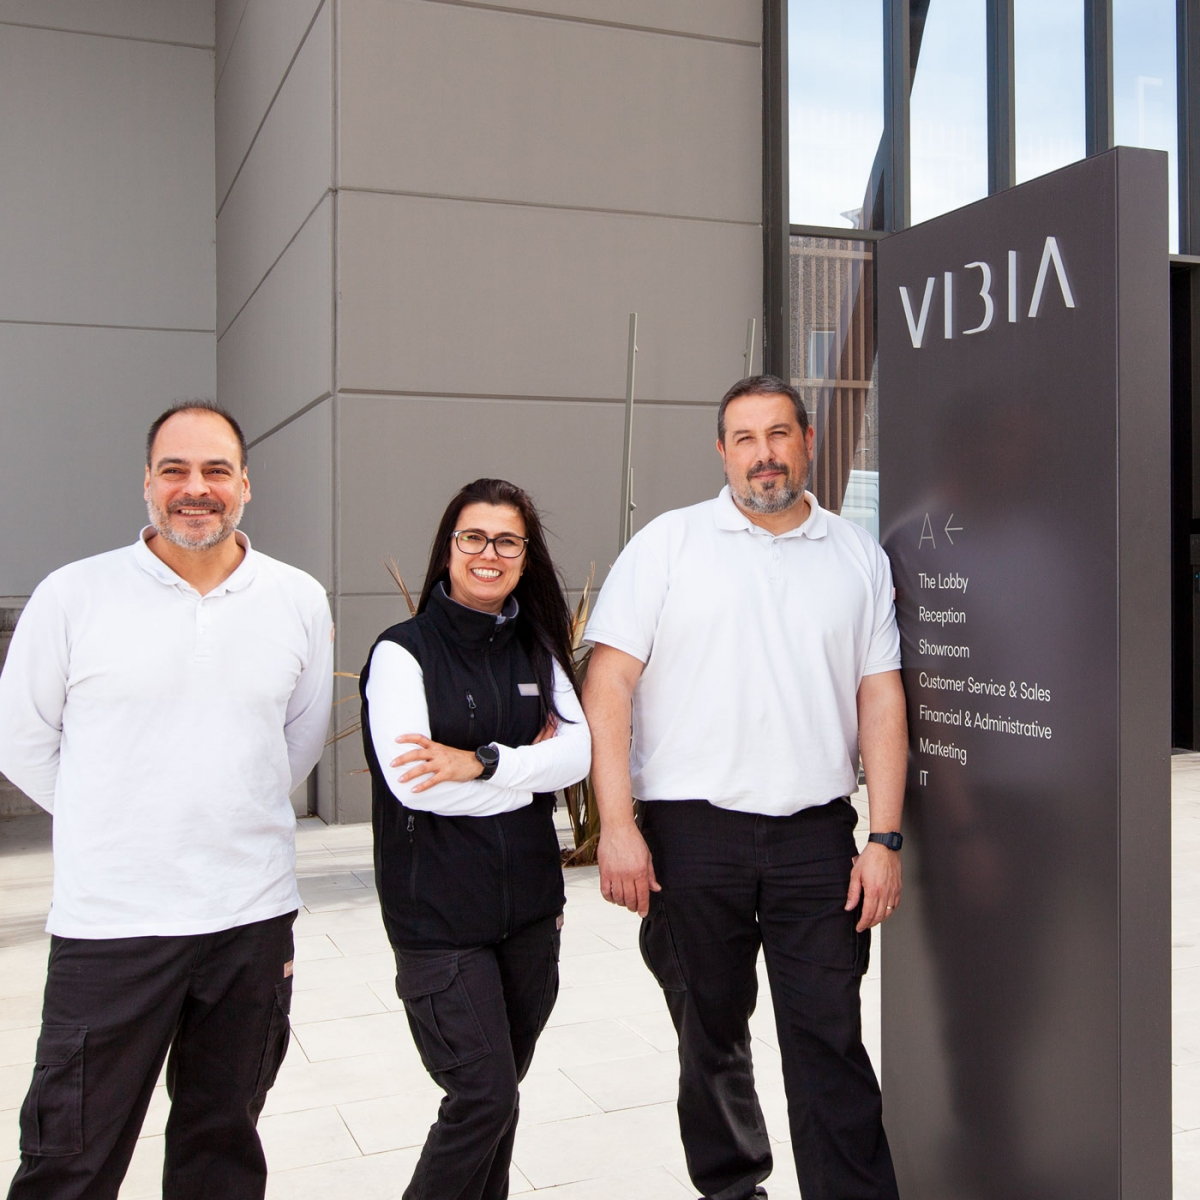 Vibia The Edit - An Inside Look at the Vibia's Assembly Team